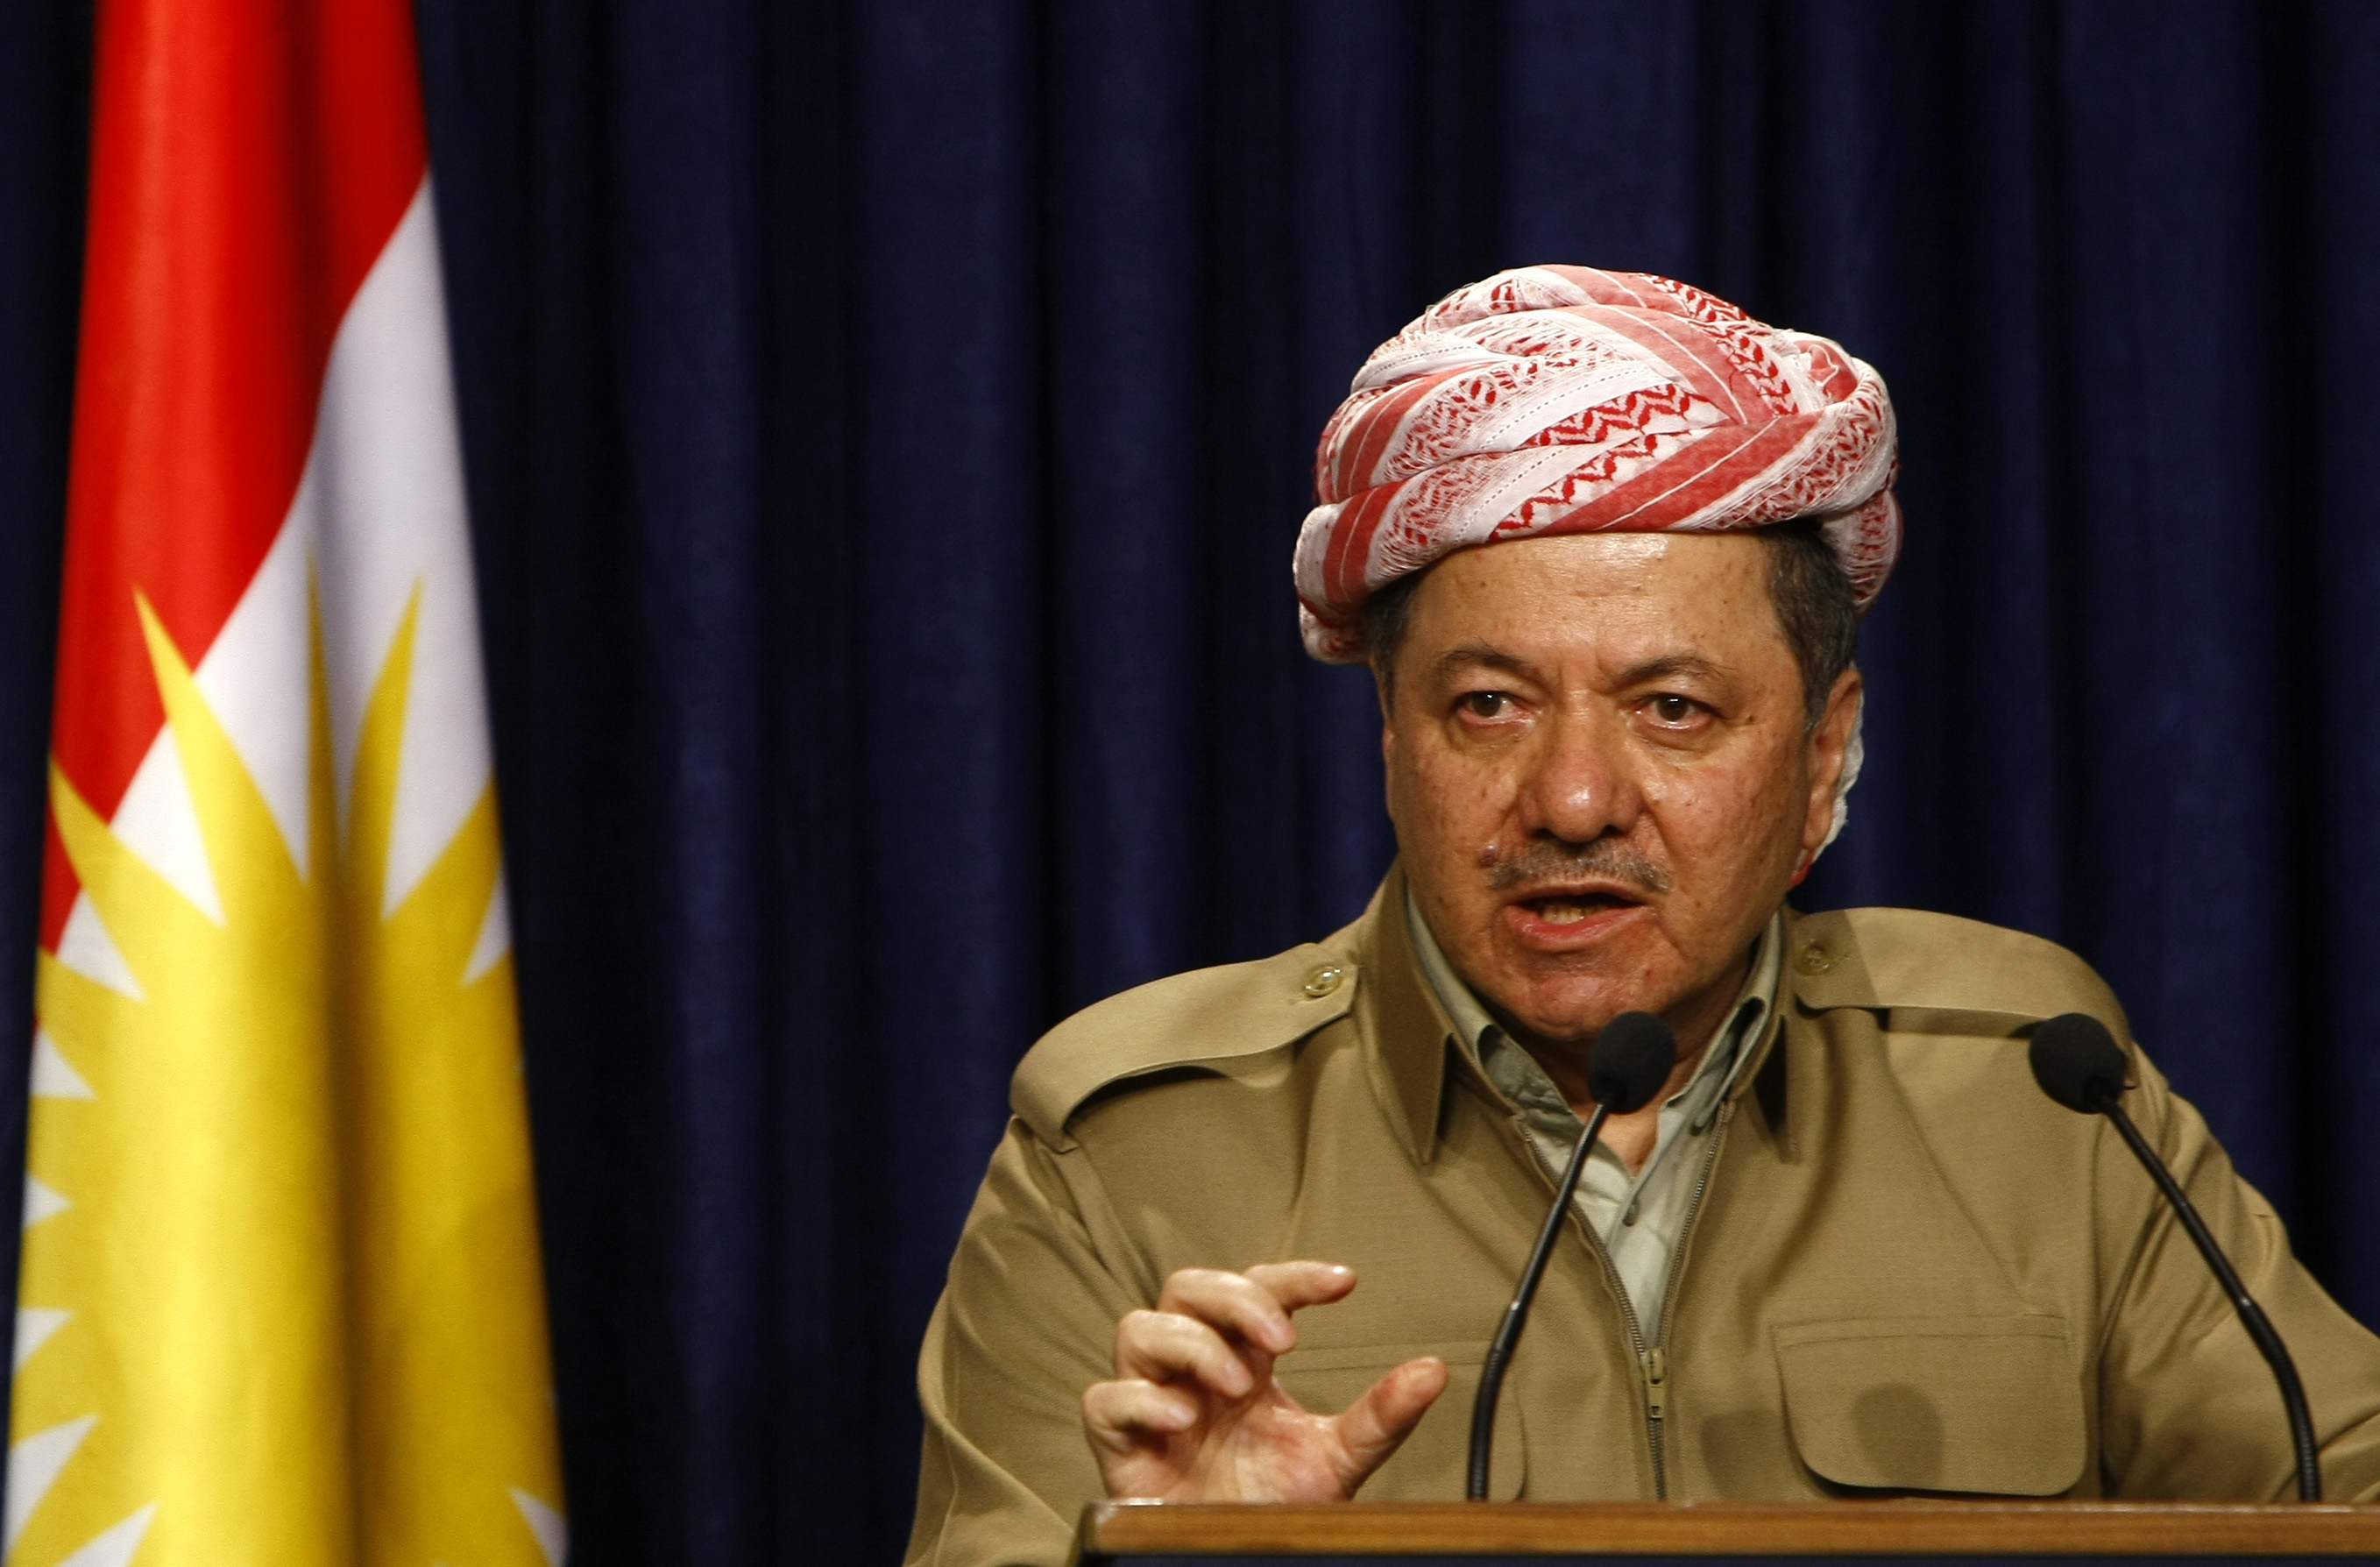 President of Iraqi Kurdistan Announces Movement Towards 'Sovereignty'